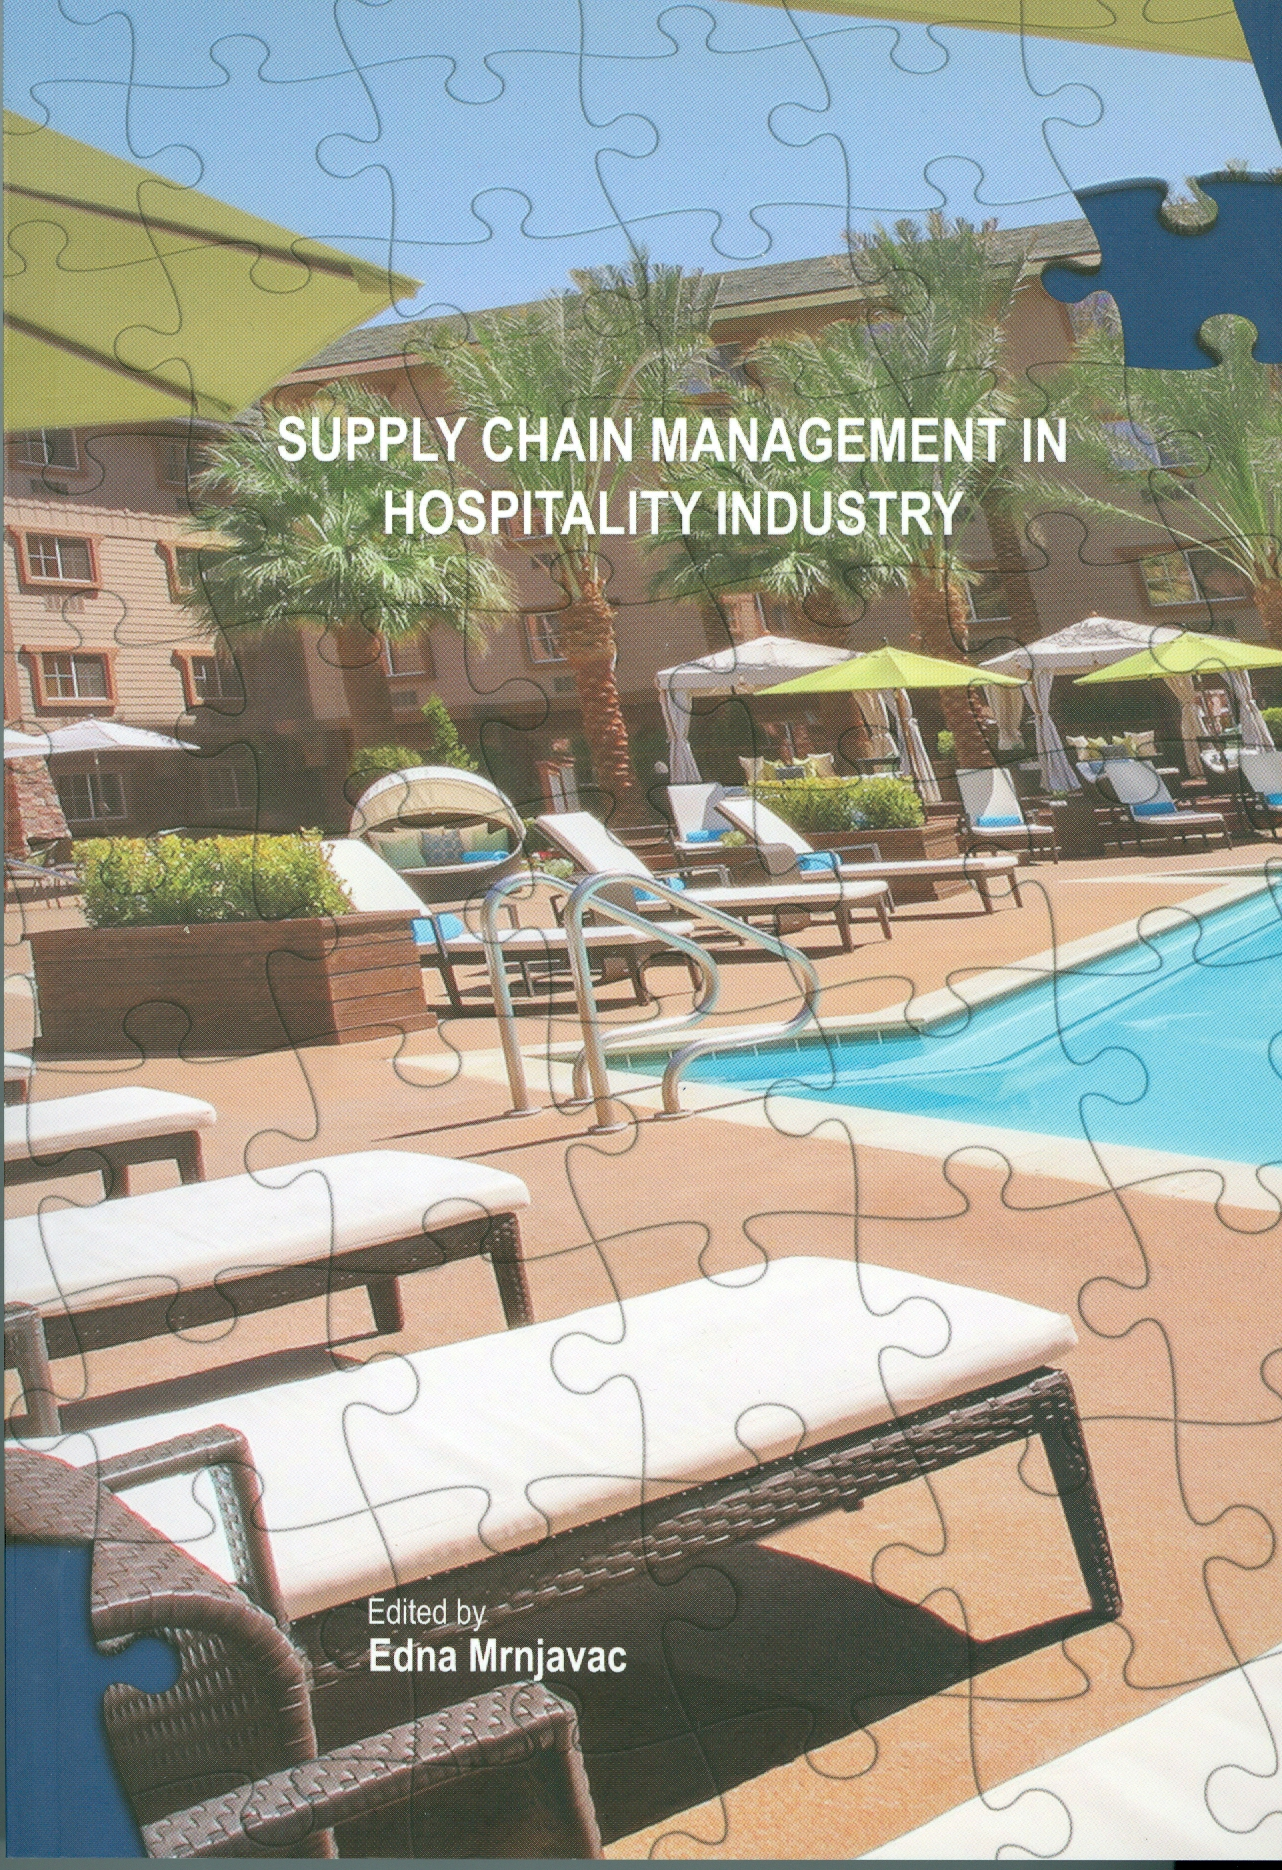 Supply Chain Management in Hospitality Industry mrnjavac